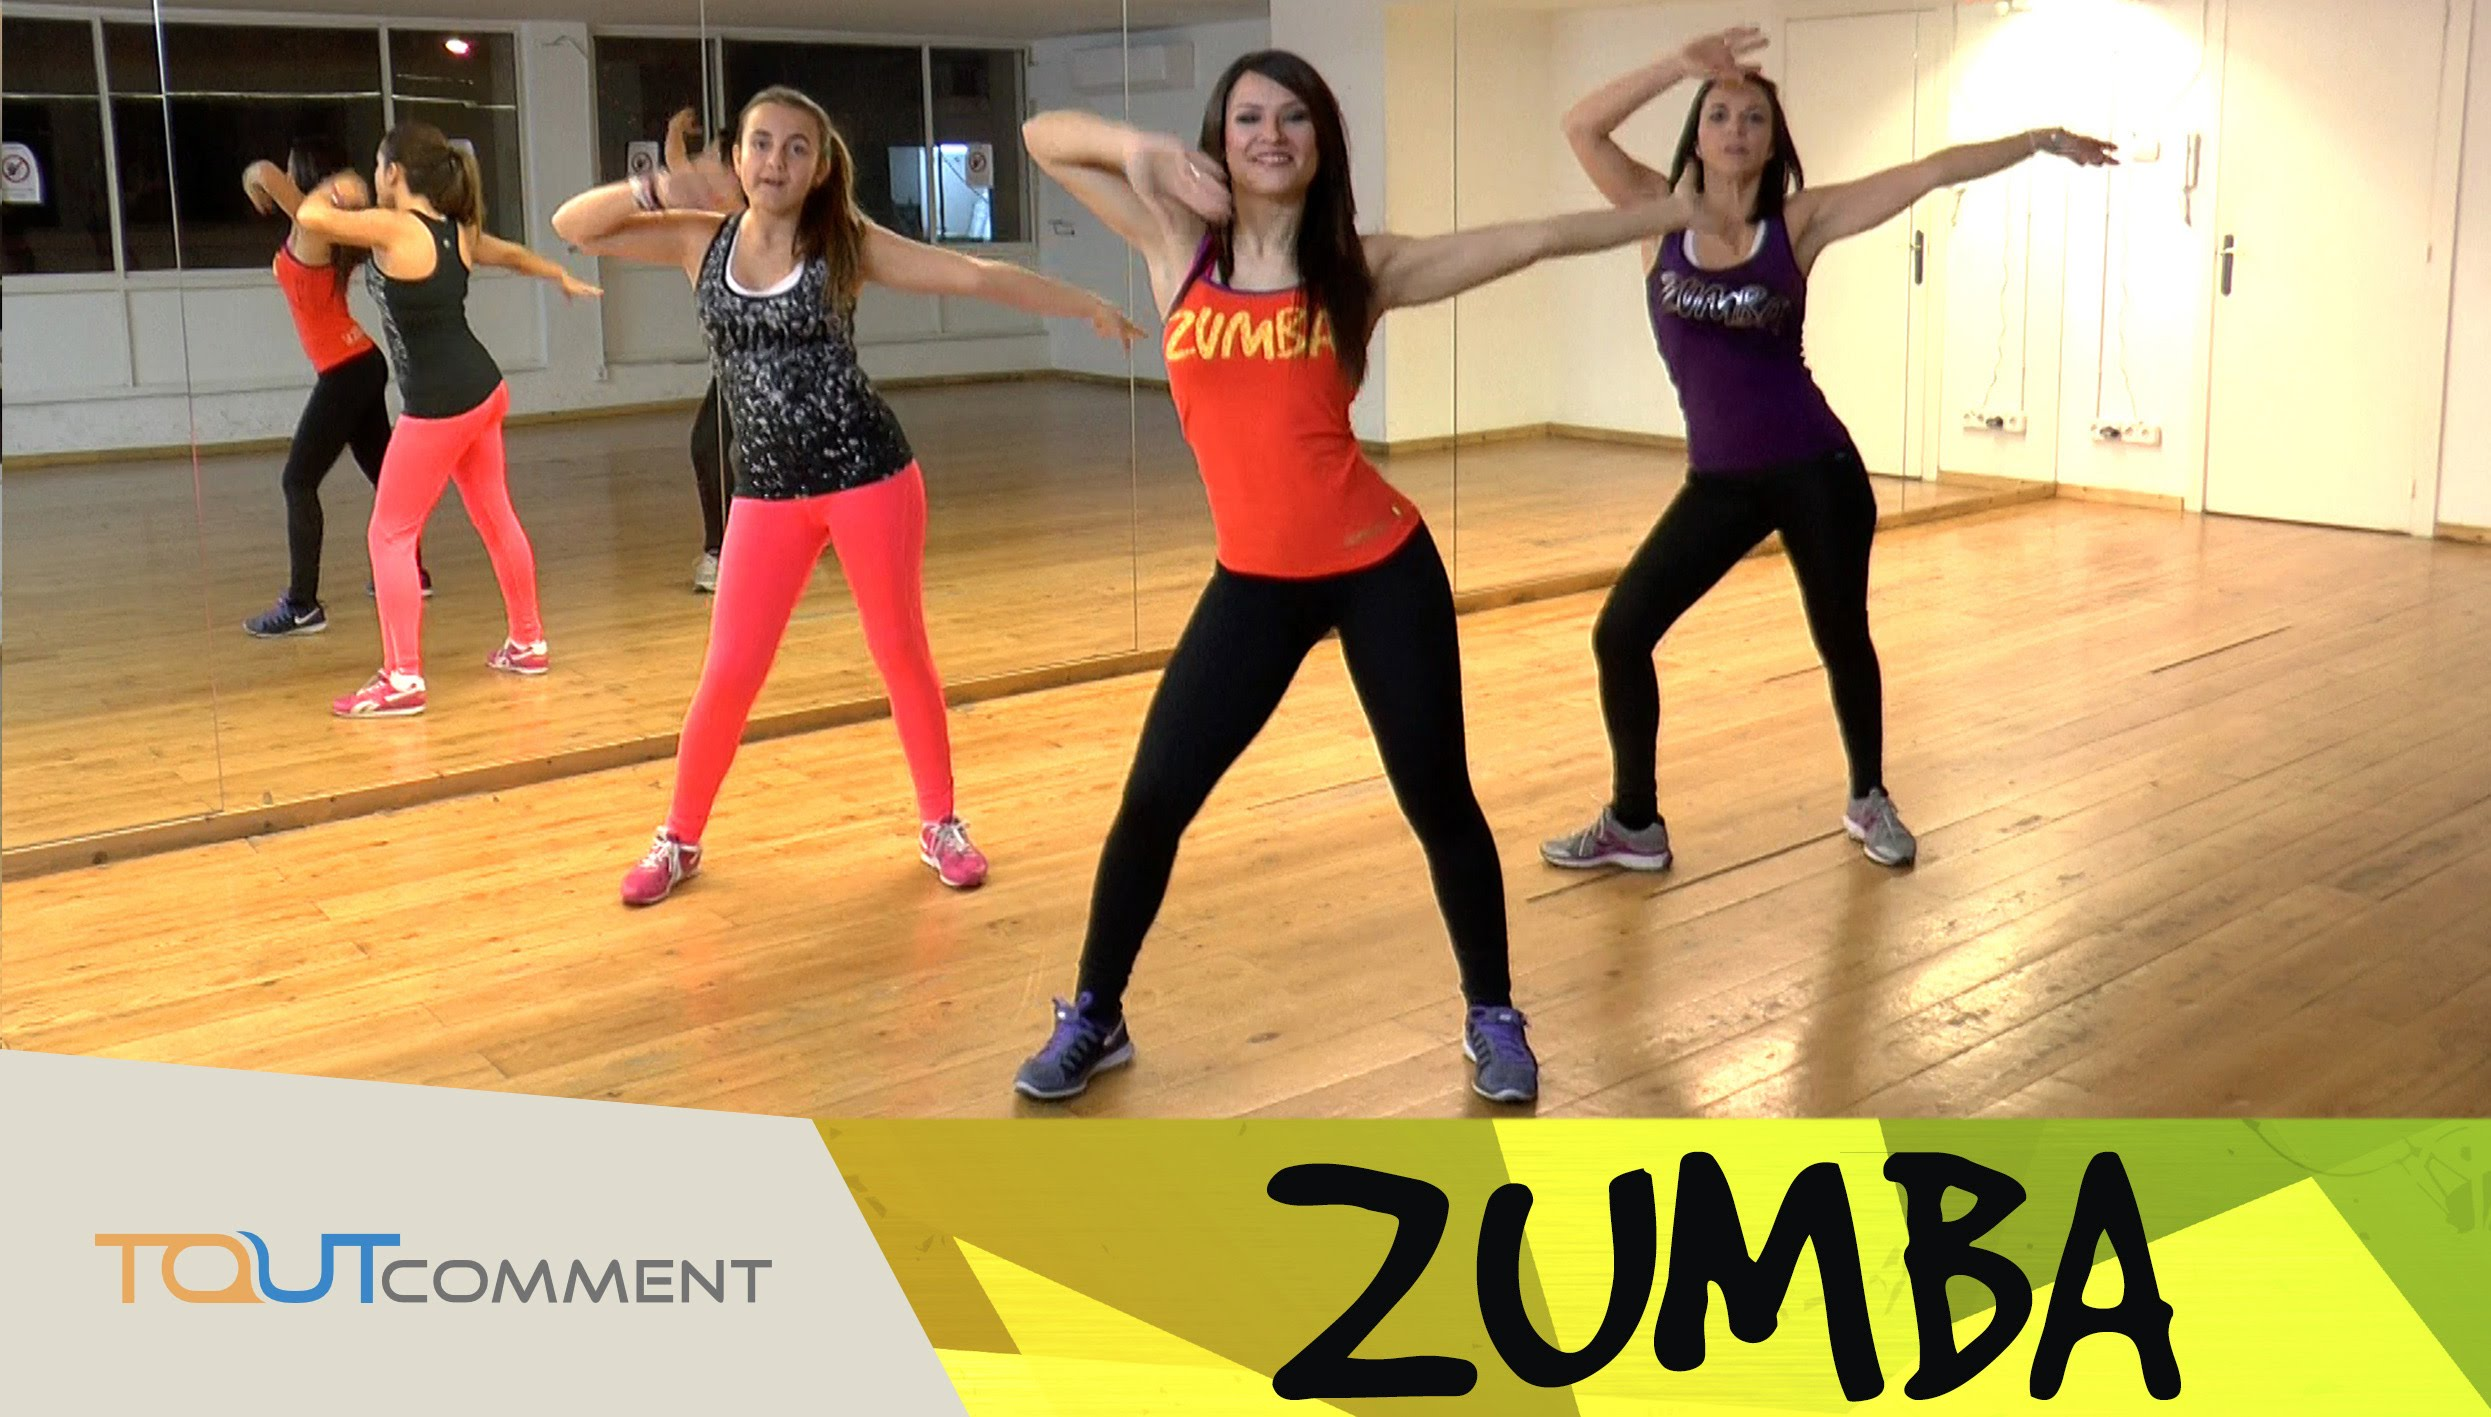 zumba to lose weight photo - 1